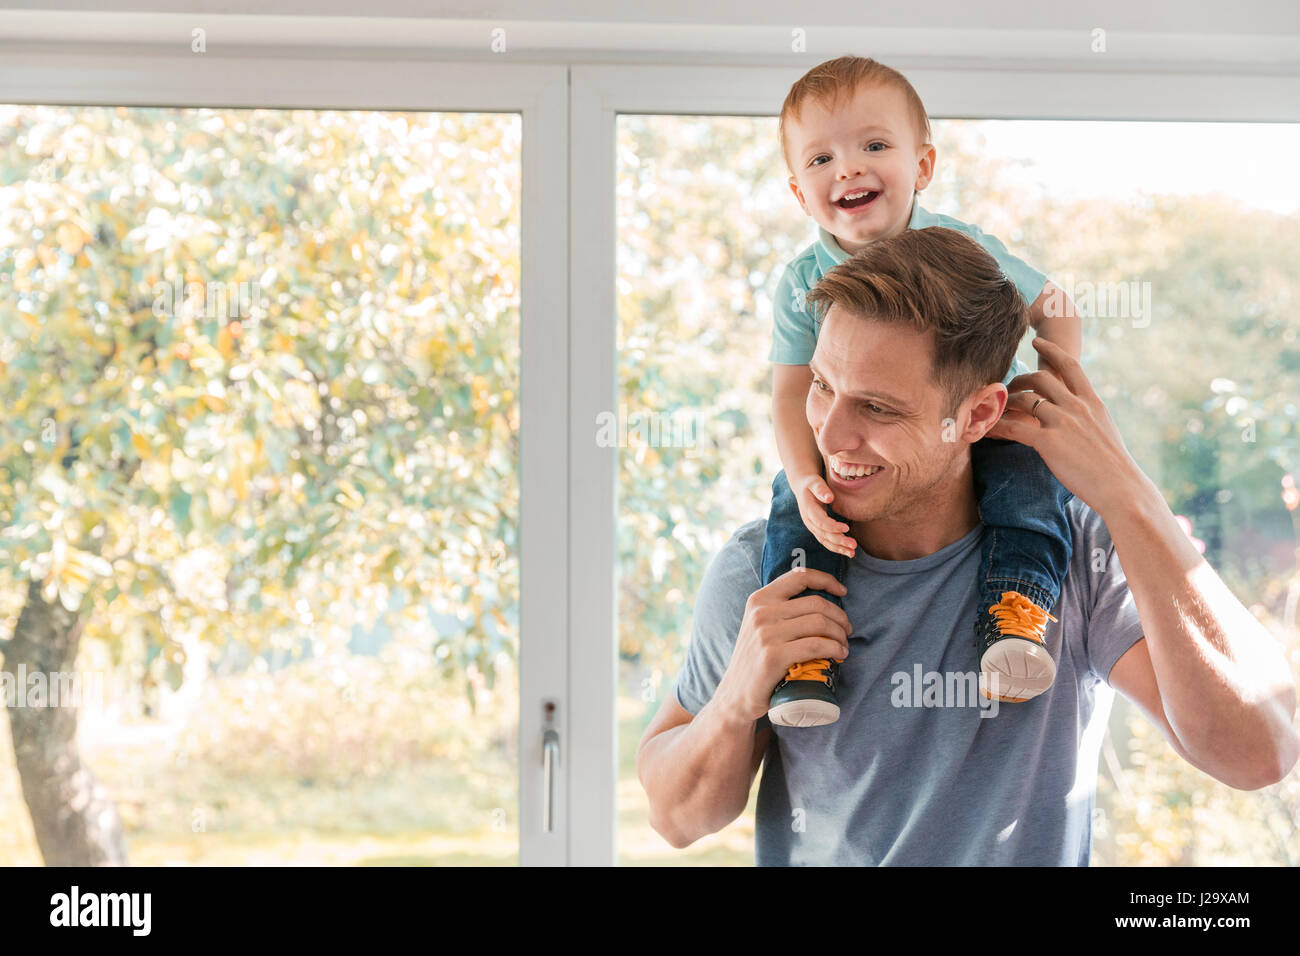 Toddler boy on father's shoulders at home by window - Stock Image